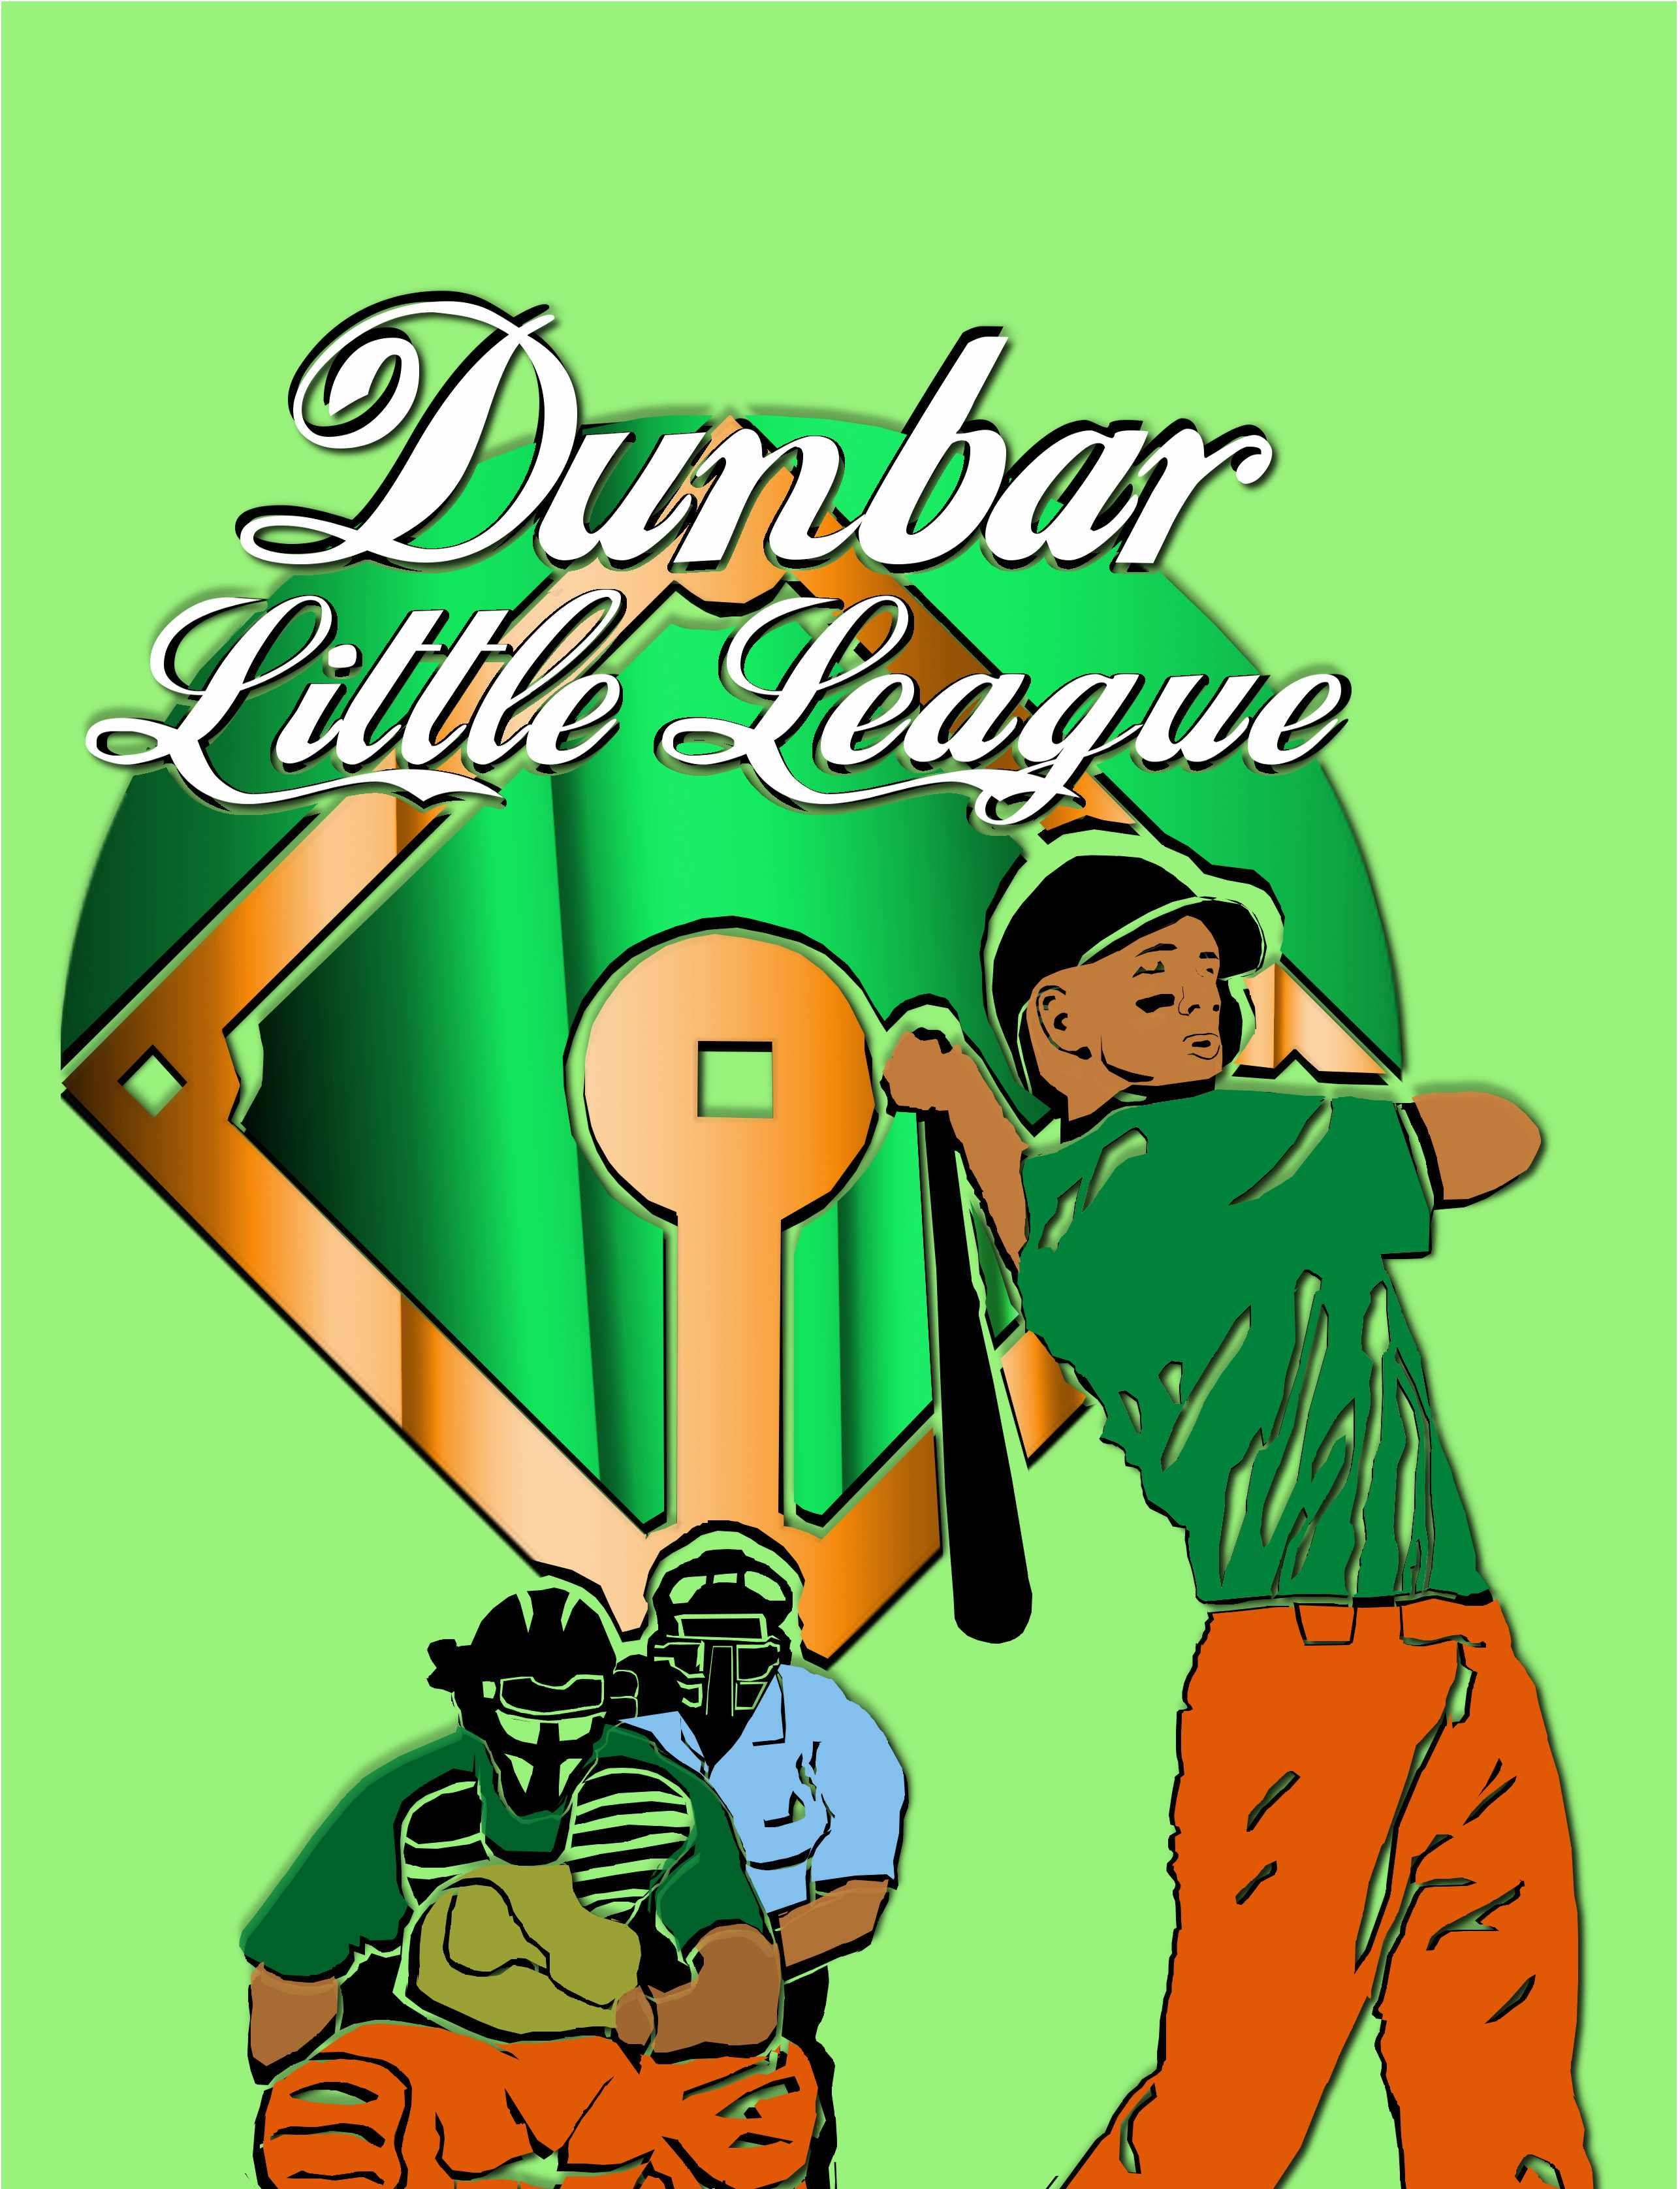 Dunbarlittleleague.jpg